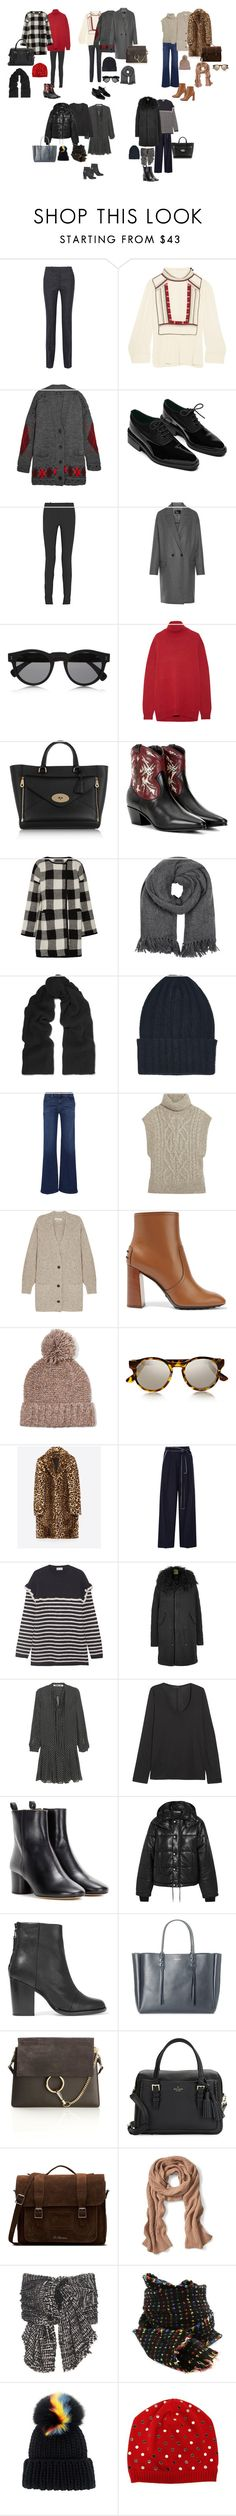 """""""OUTFIT 1"""" by momwithsneakers ❤ liked on Polyvore featuring Victoria Beckham, Étoile Isabel Marant, Isabel Marant, Roland Mouret, Illesteva, Marni, Mulberry, Yves Saint Laurent, Hatch and Madeleine Thompson"""